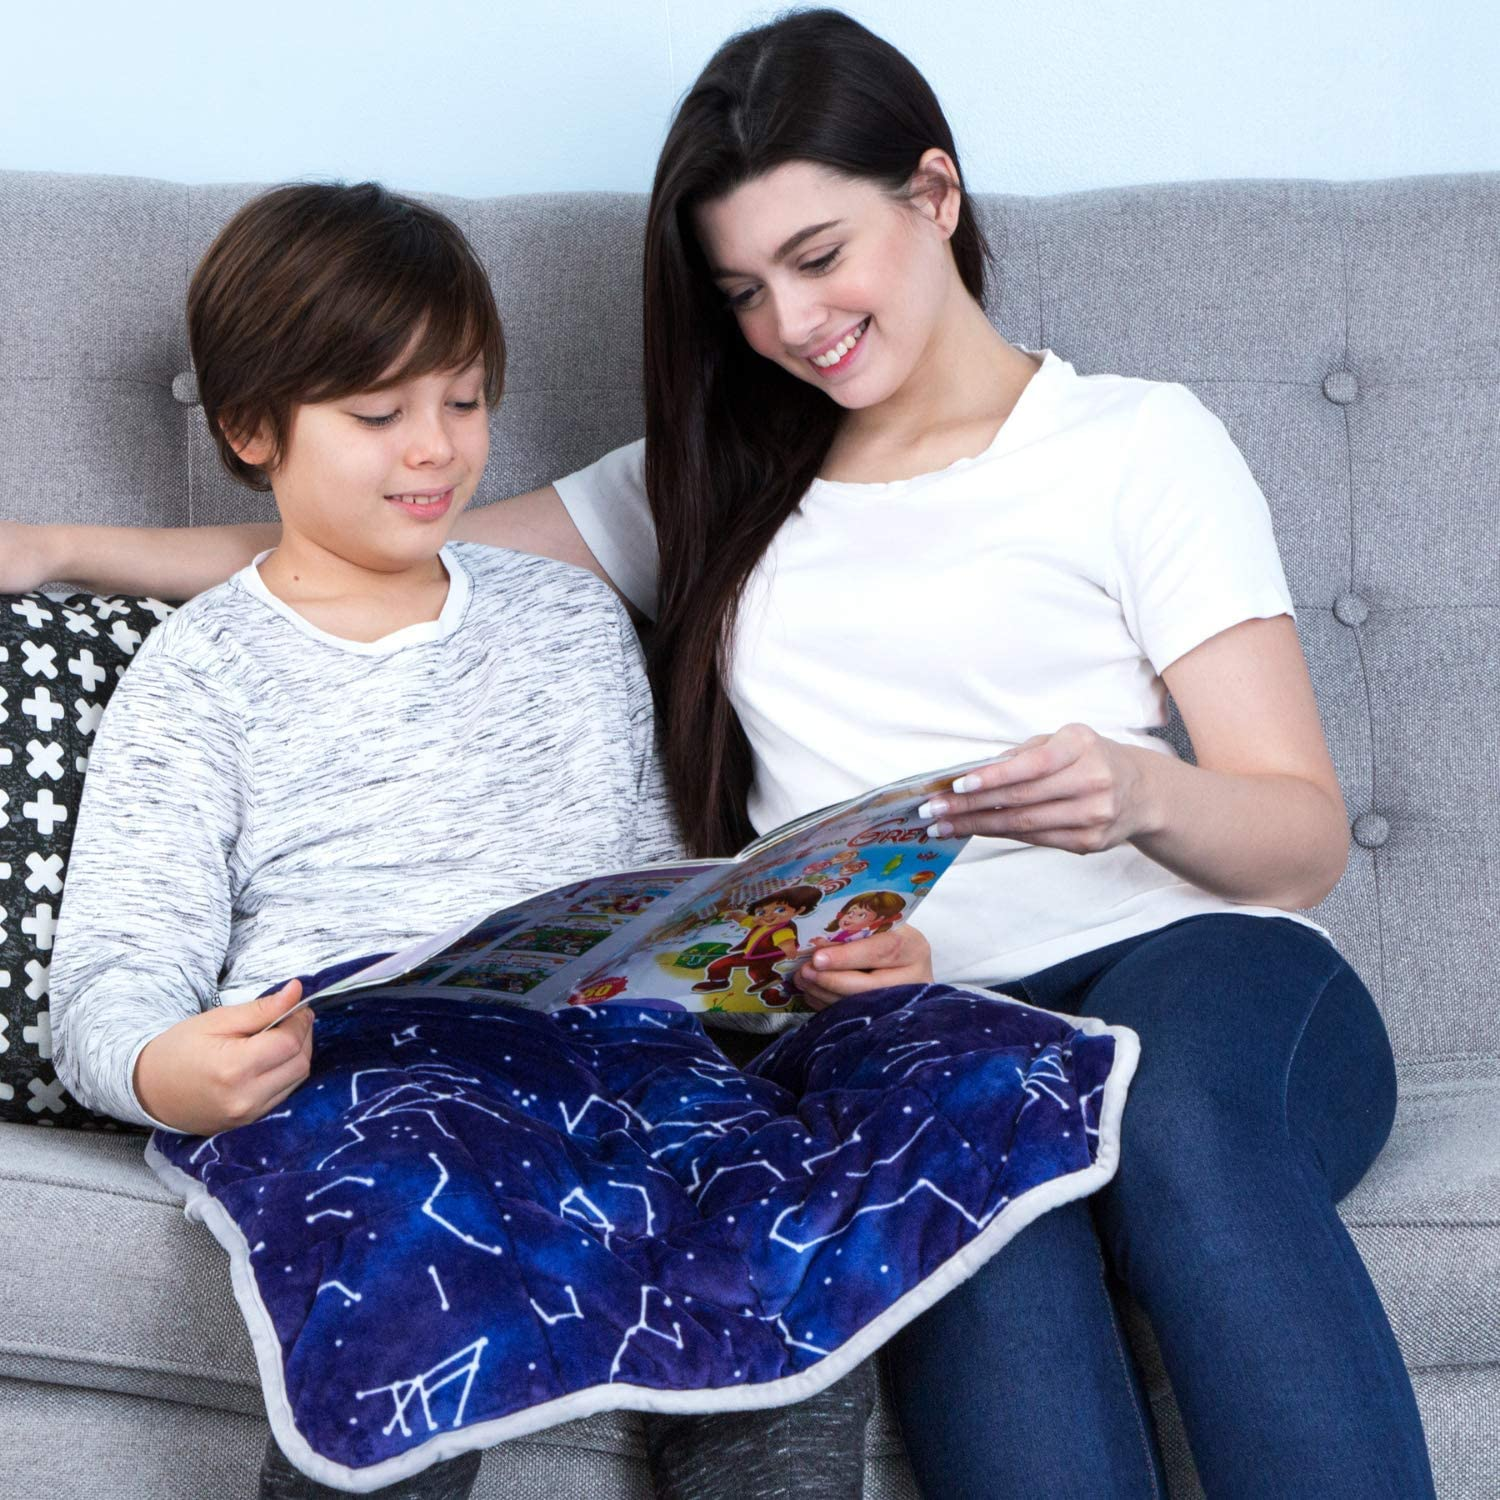 Weighted Lap Pad Work For Kids Adults 3lbs Mermaid Lap Blanket For School